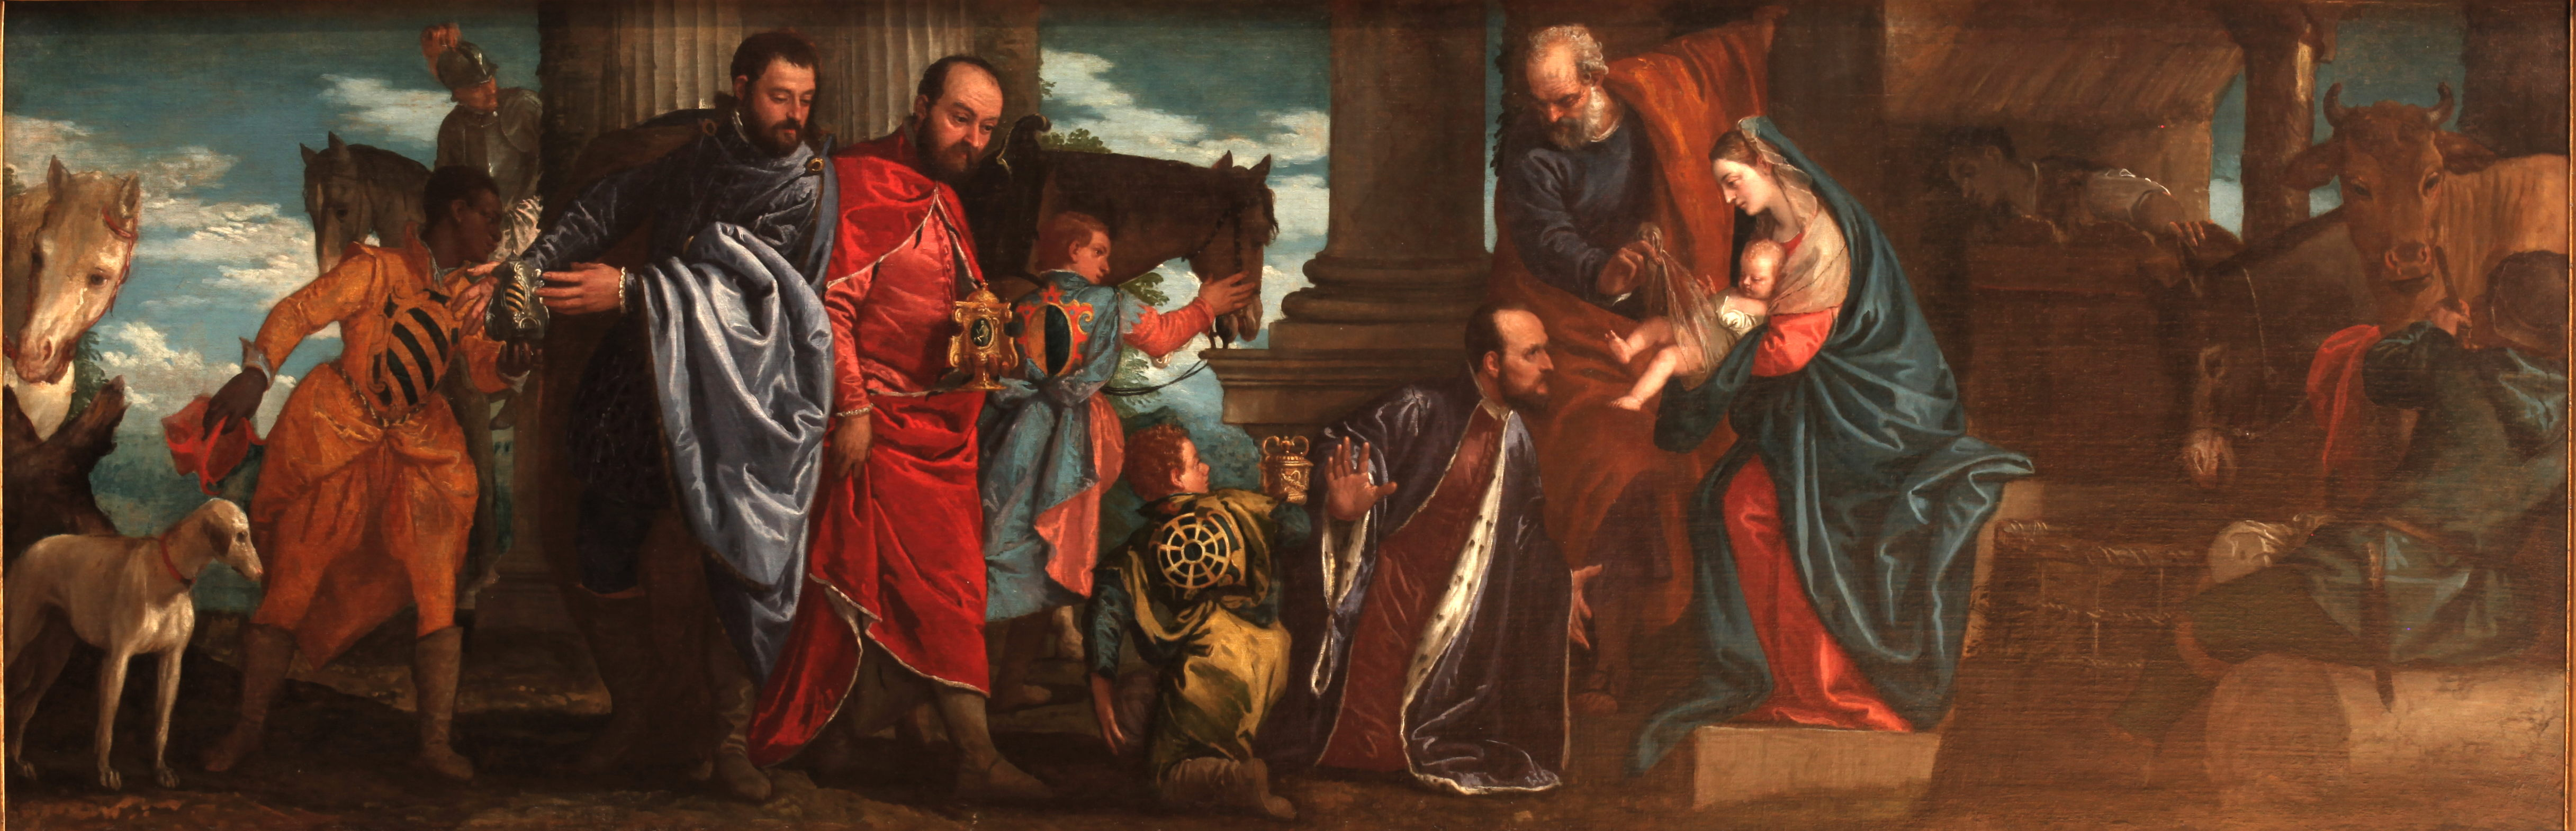 Adoration of the Wise Men-Veronese-MBA Lyon A79-IMG 0315